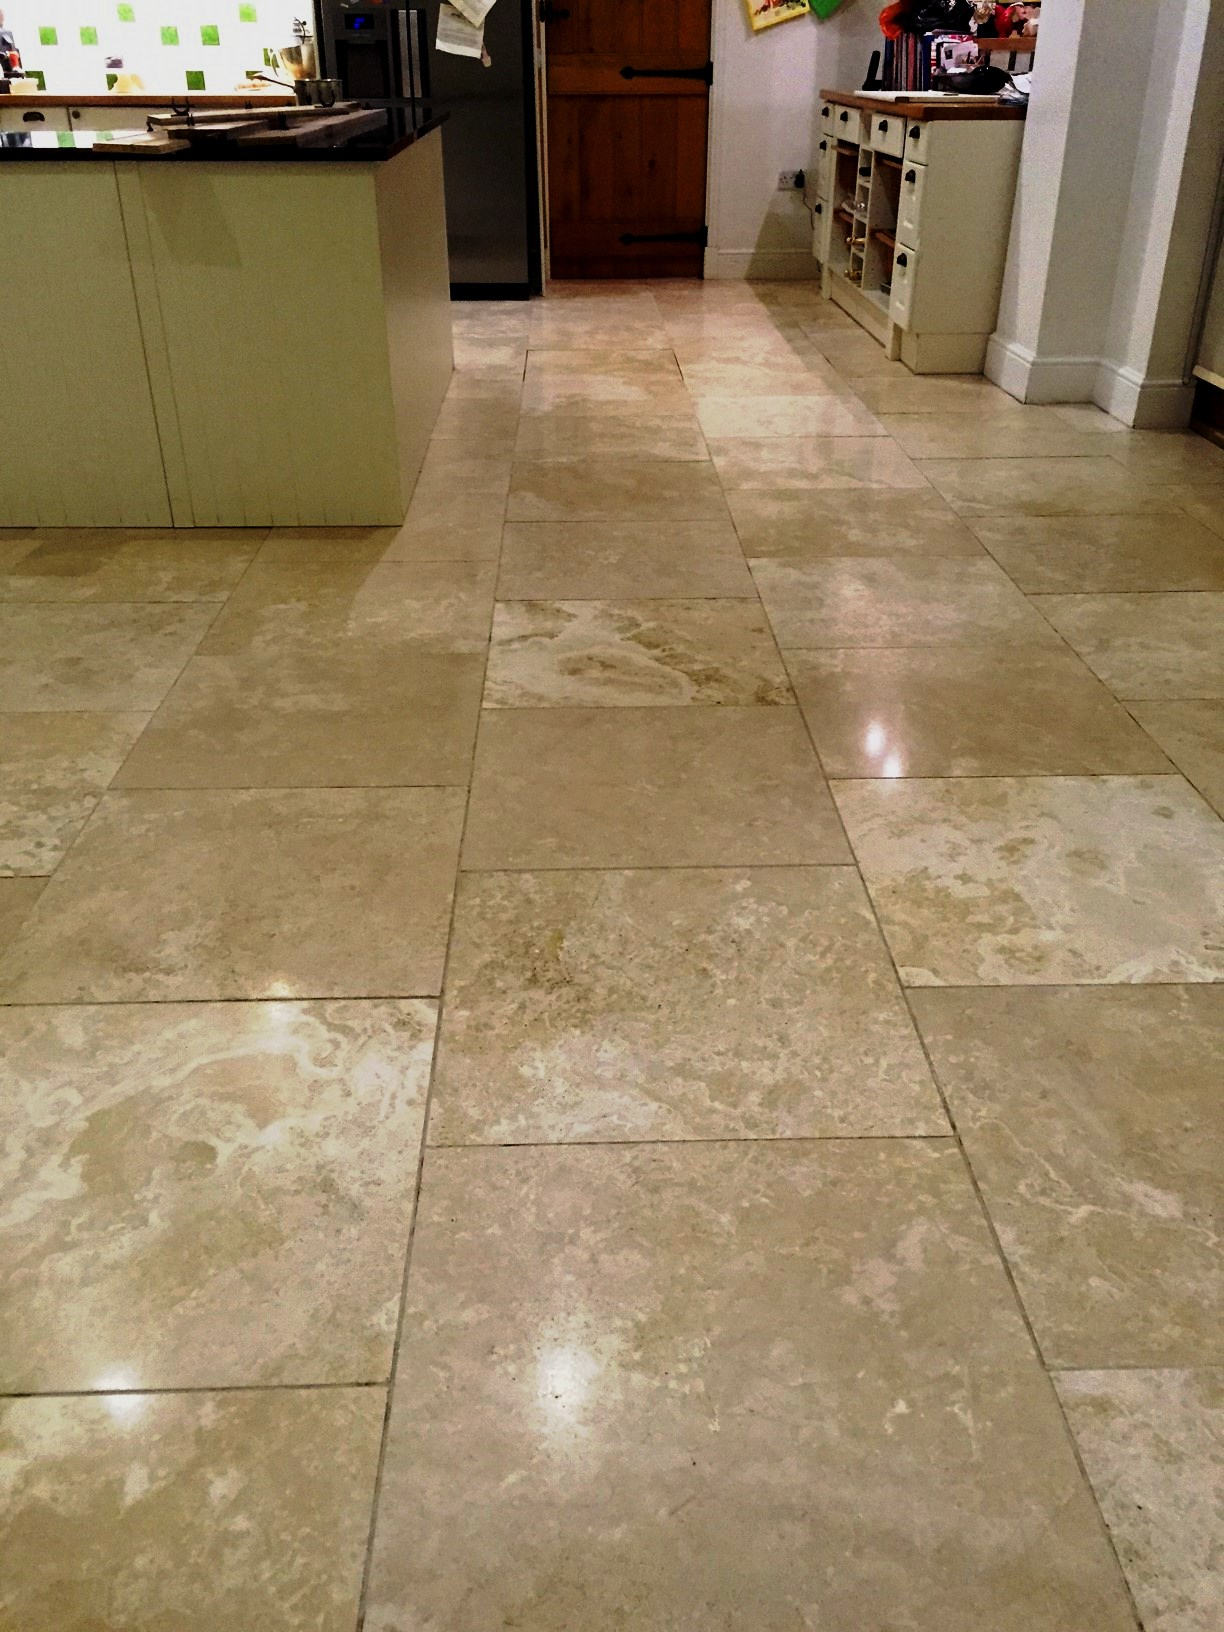 Travertine Tile Kitchen Floorjpg Travertine Tile Kitchen Floor